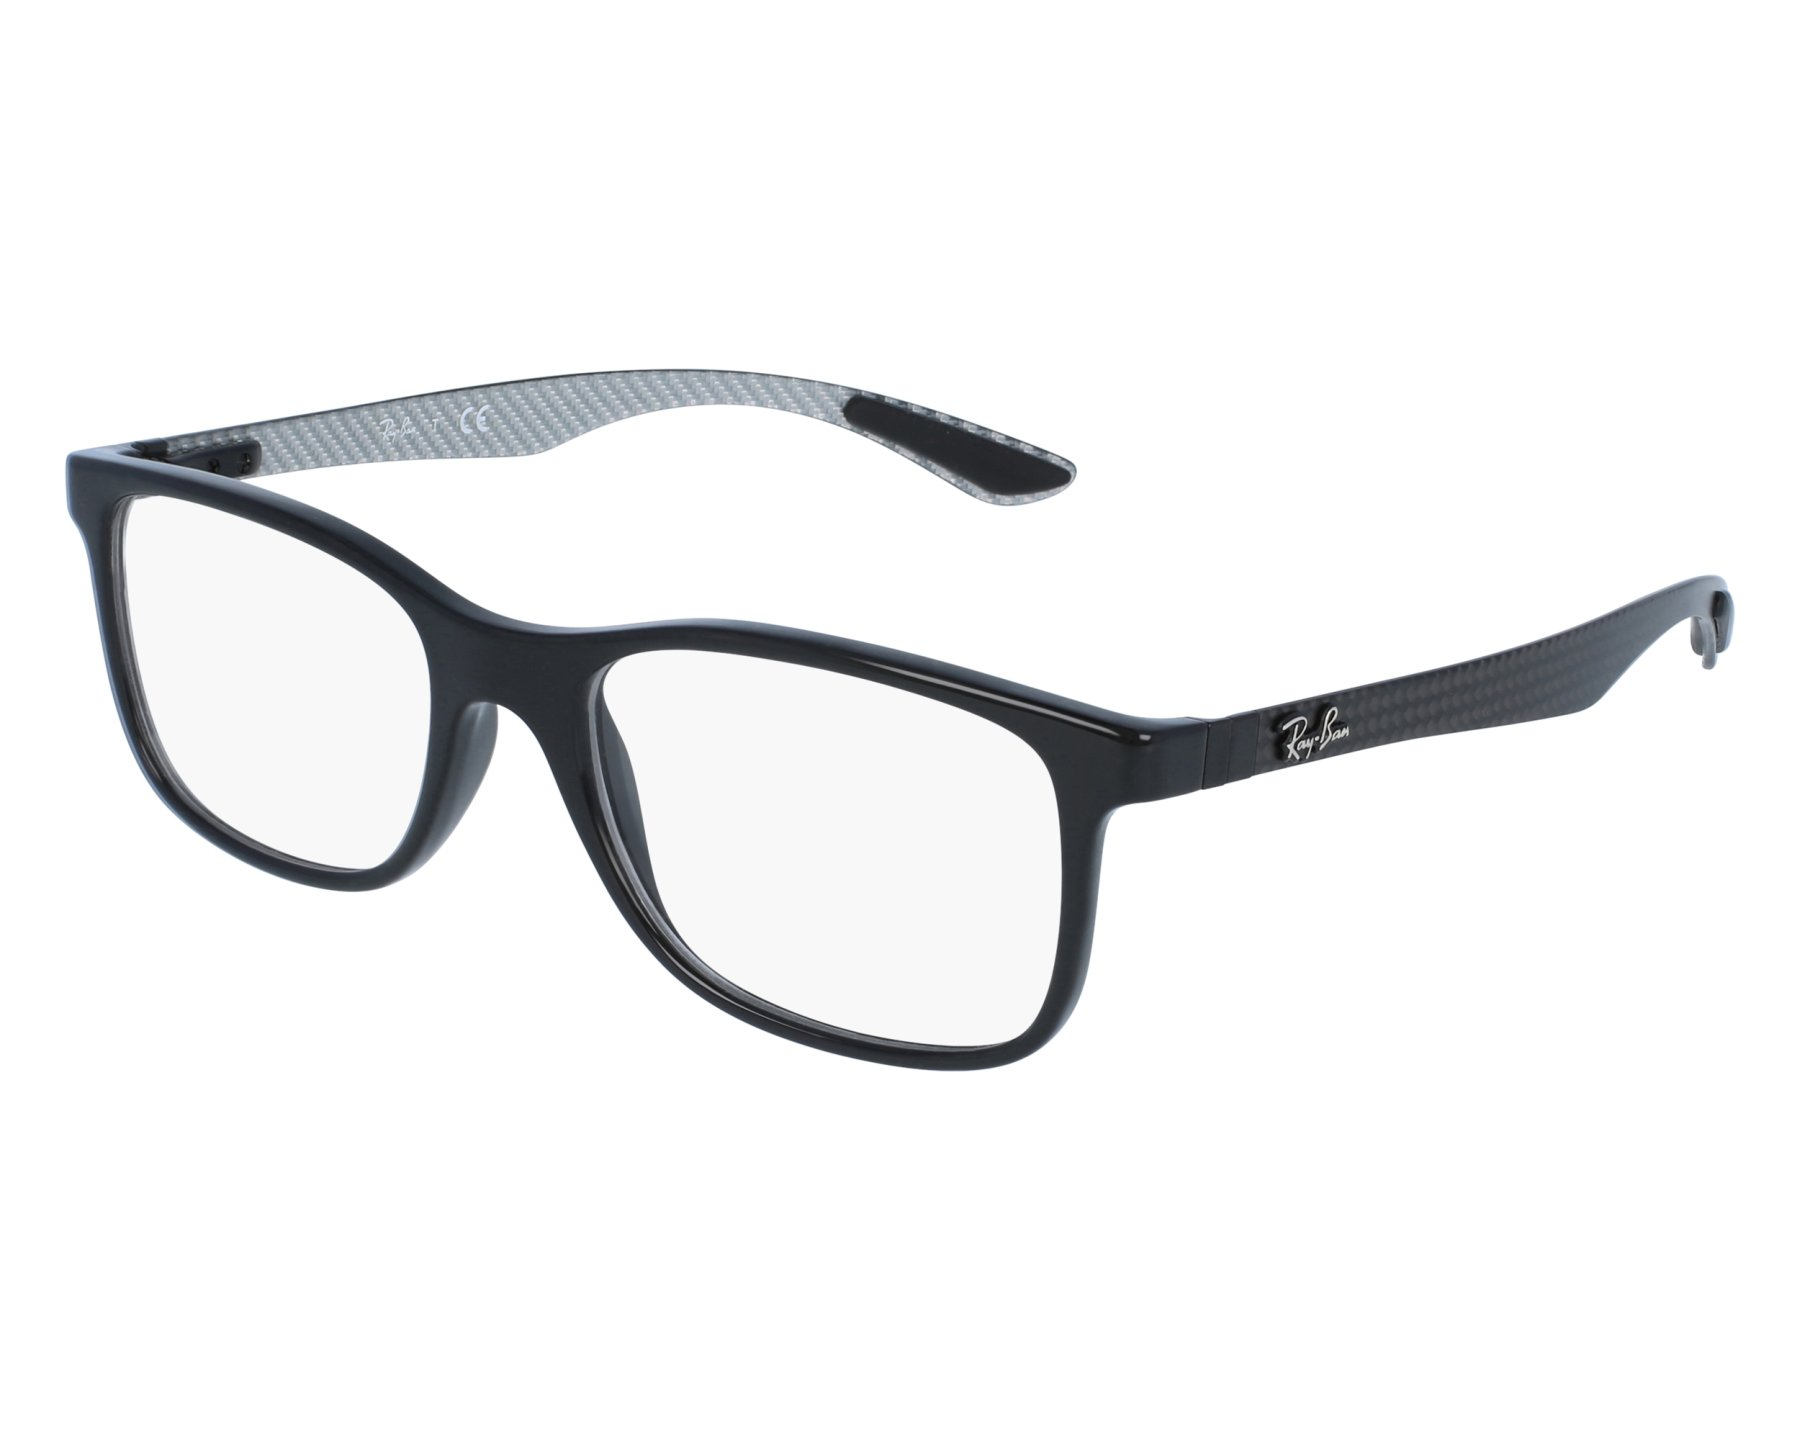 336eebcf6c eyeglasses Ray-Ban RX-8903 5681 55-18 Black Carbon front view